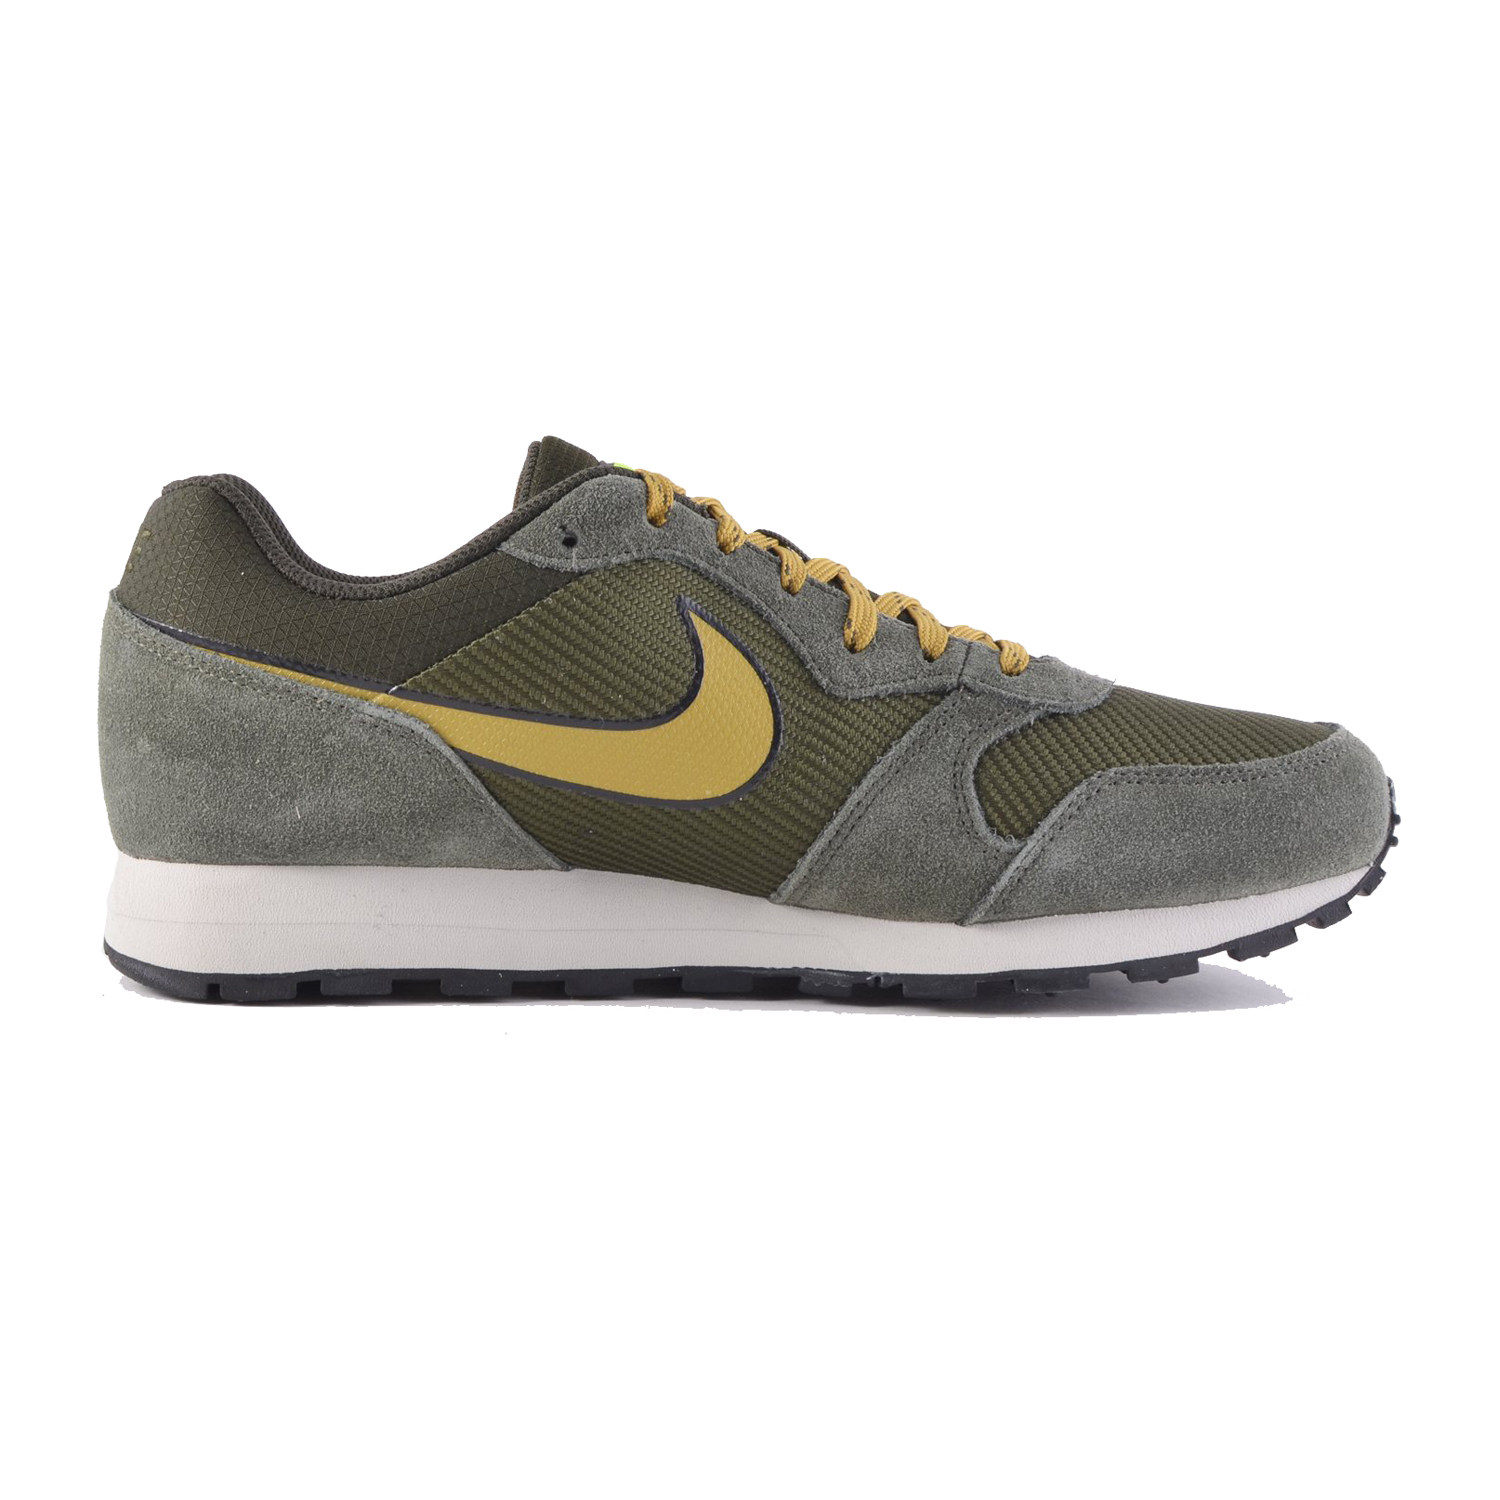 ... Sneakers Nike MD Runner 2 M ( AO5377-300 ) cb7bc6a6af7